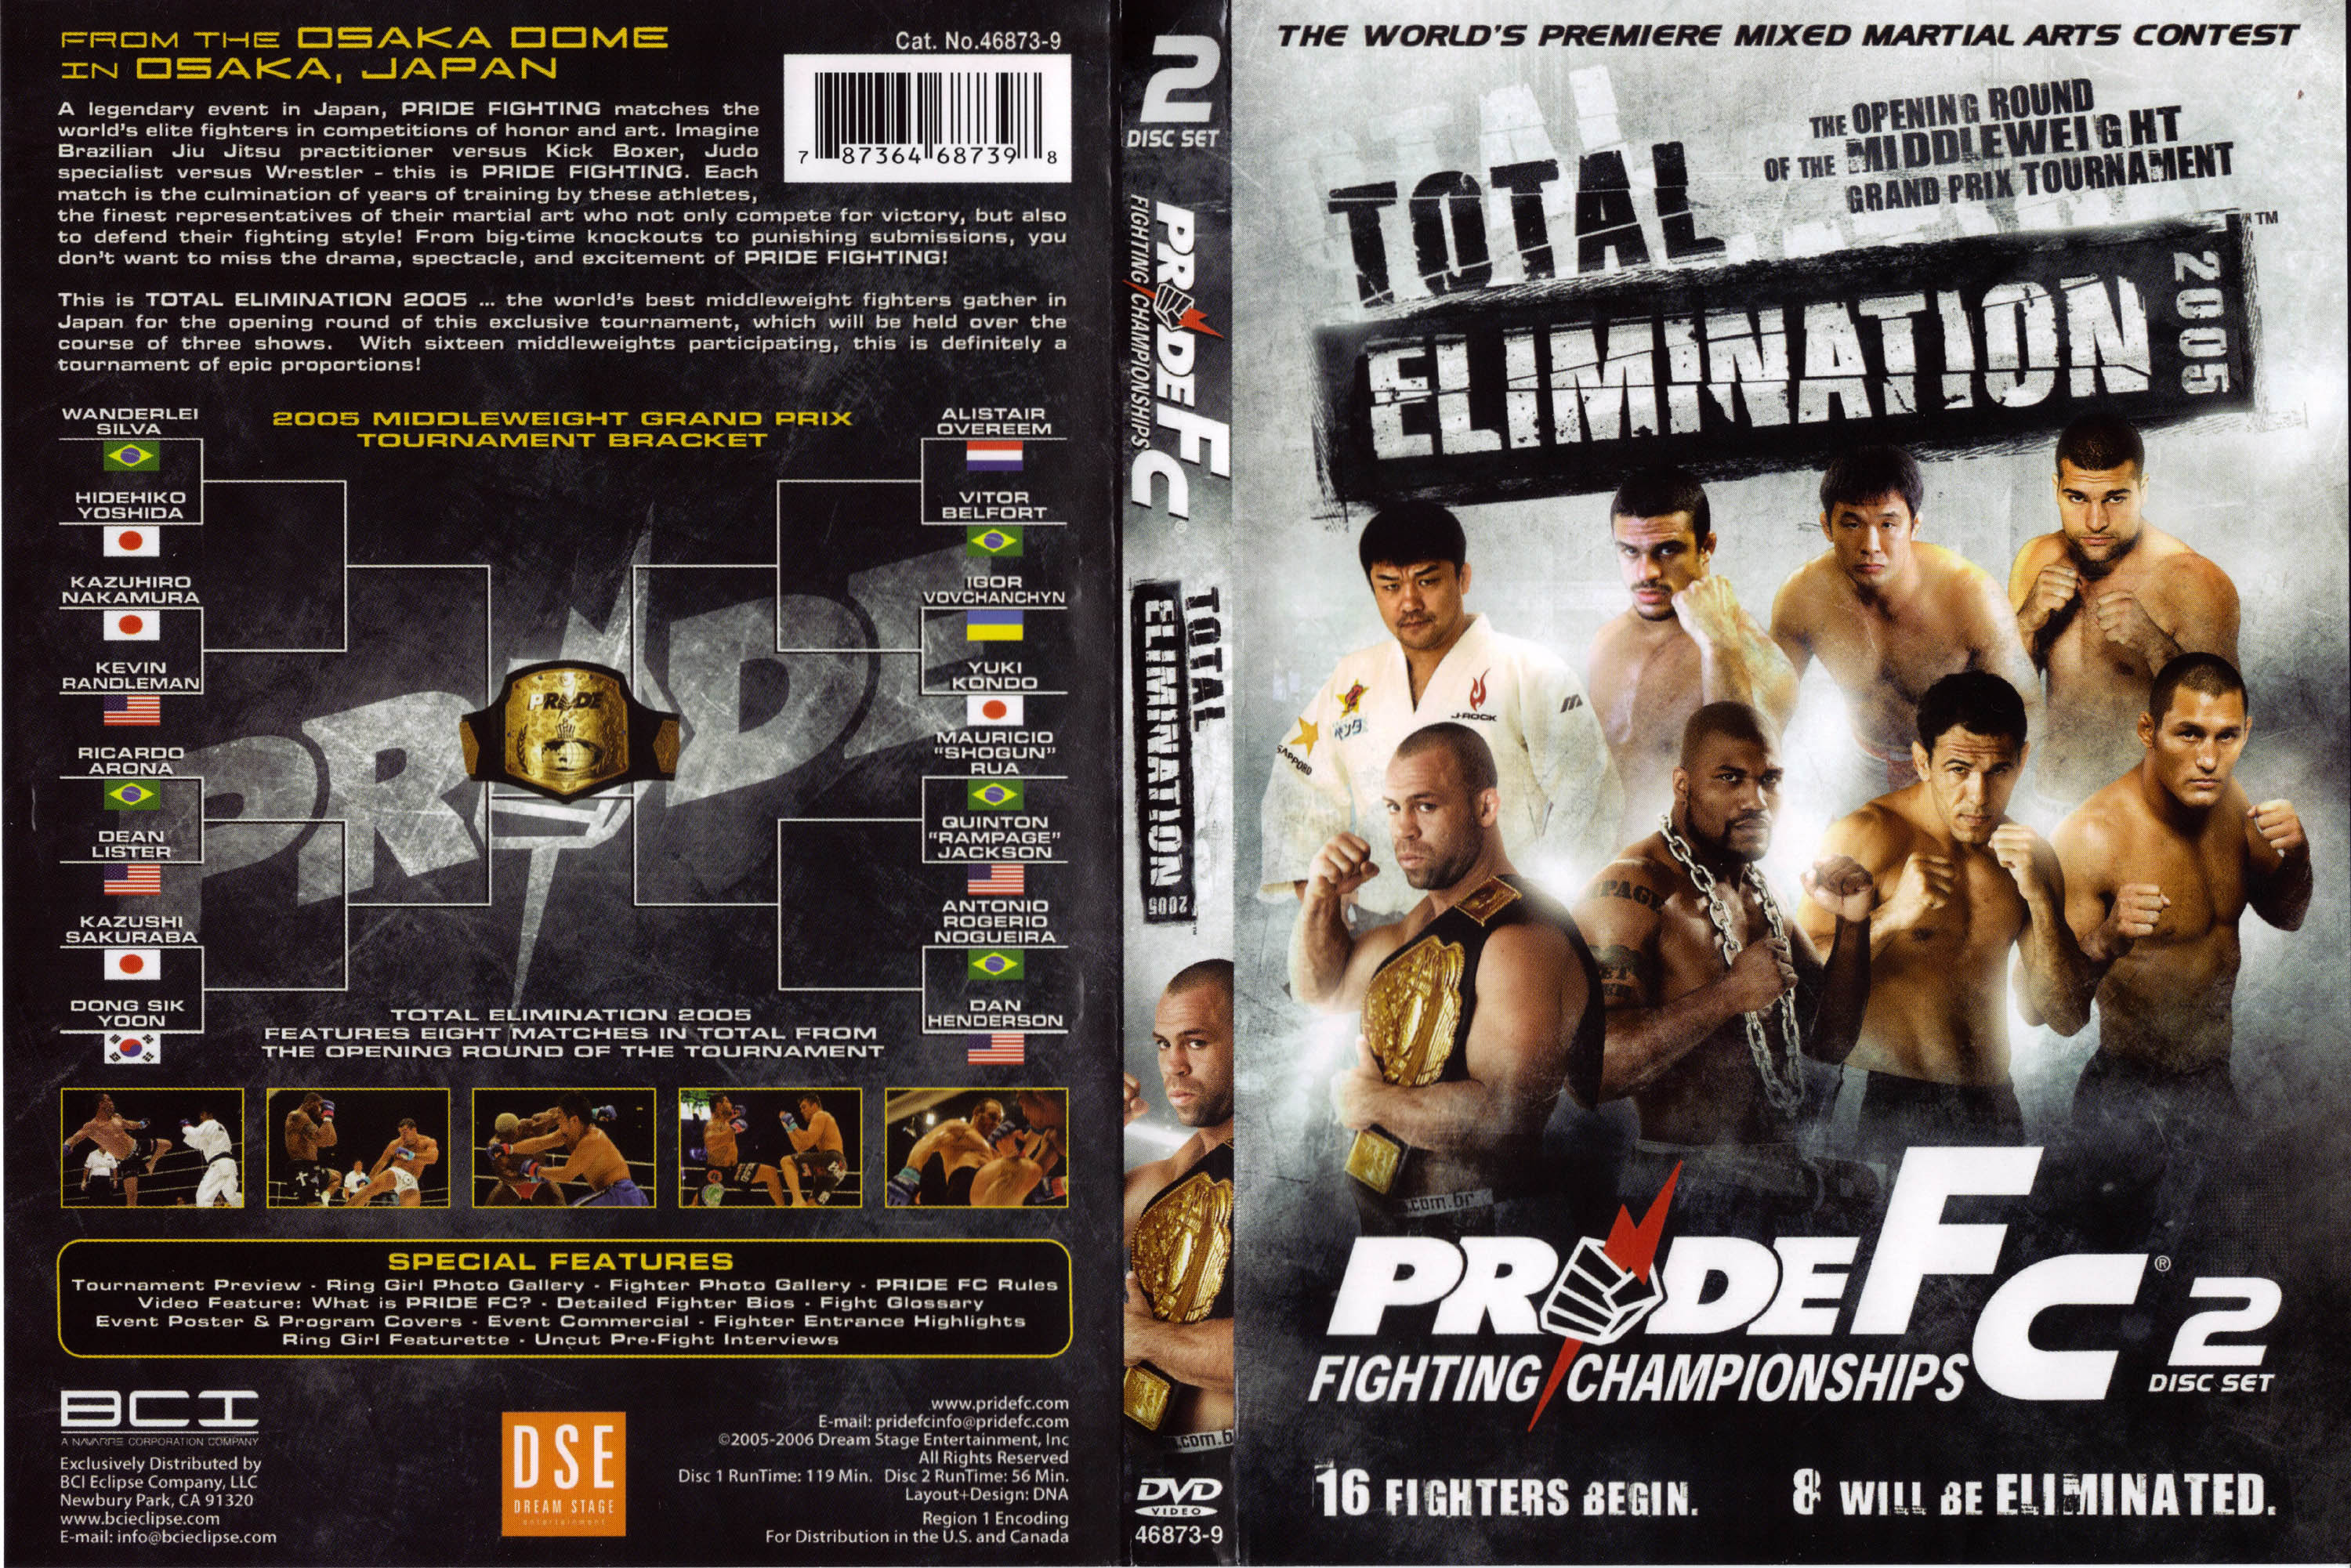 totalelimination2005